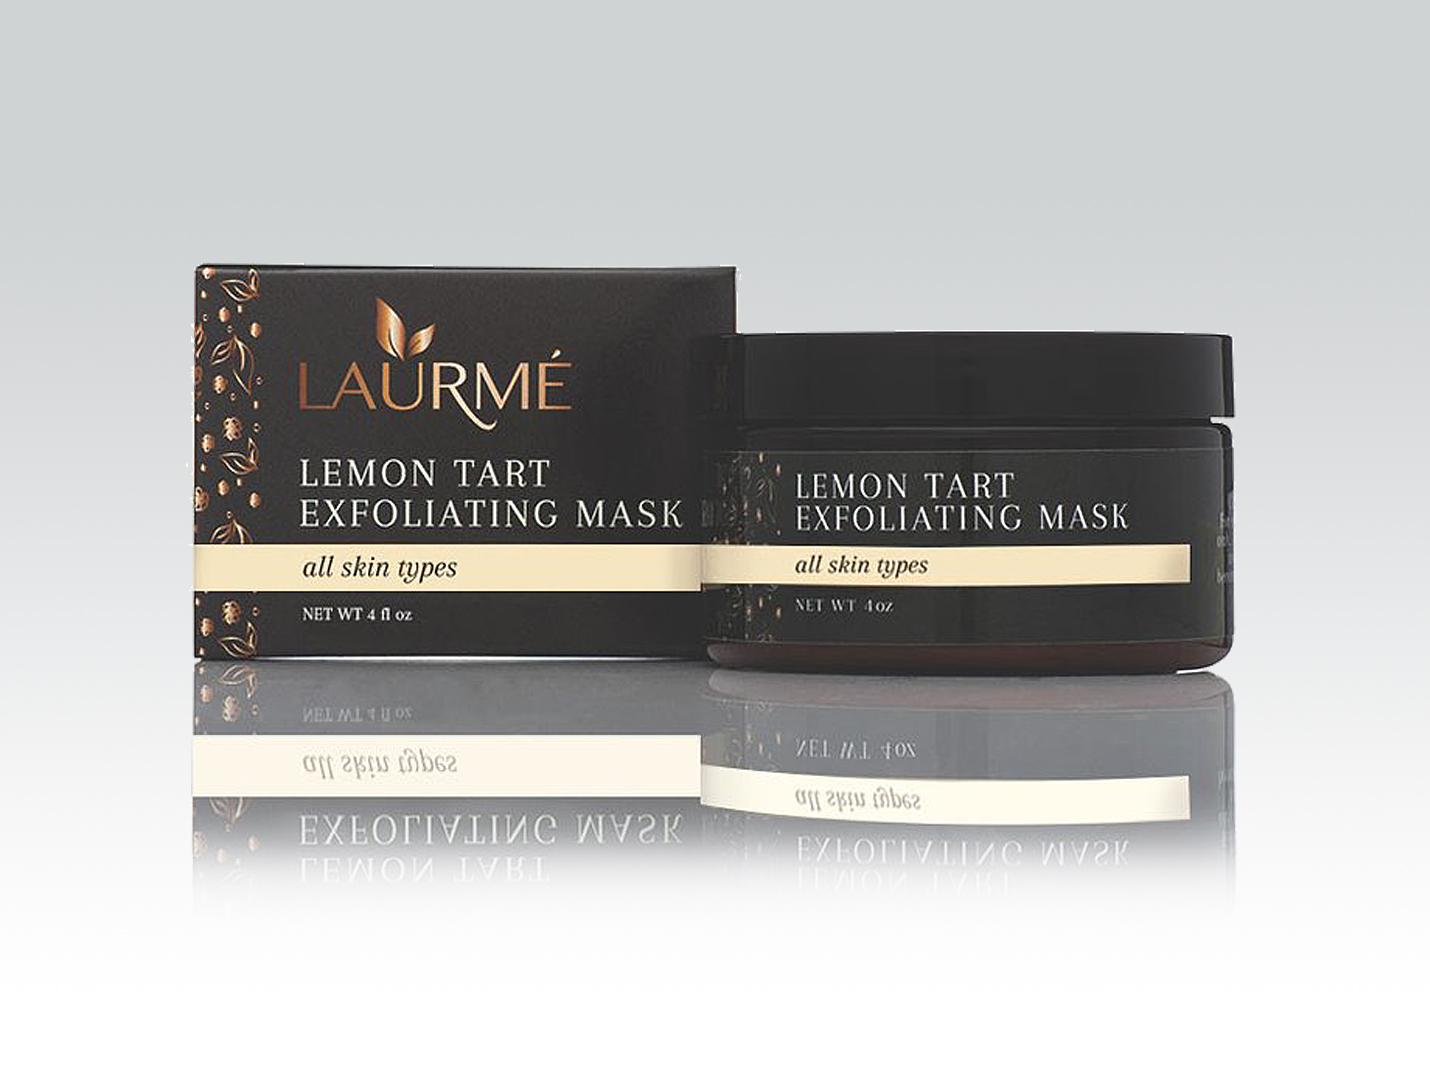 Laurme face mask